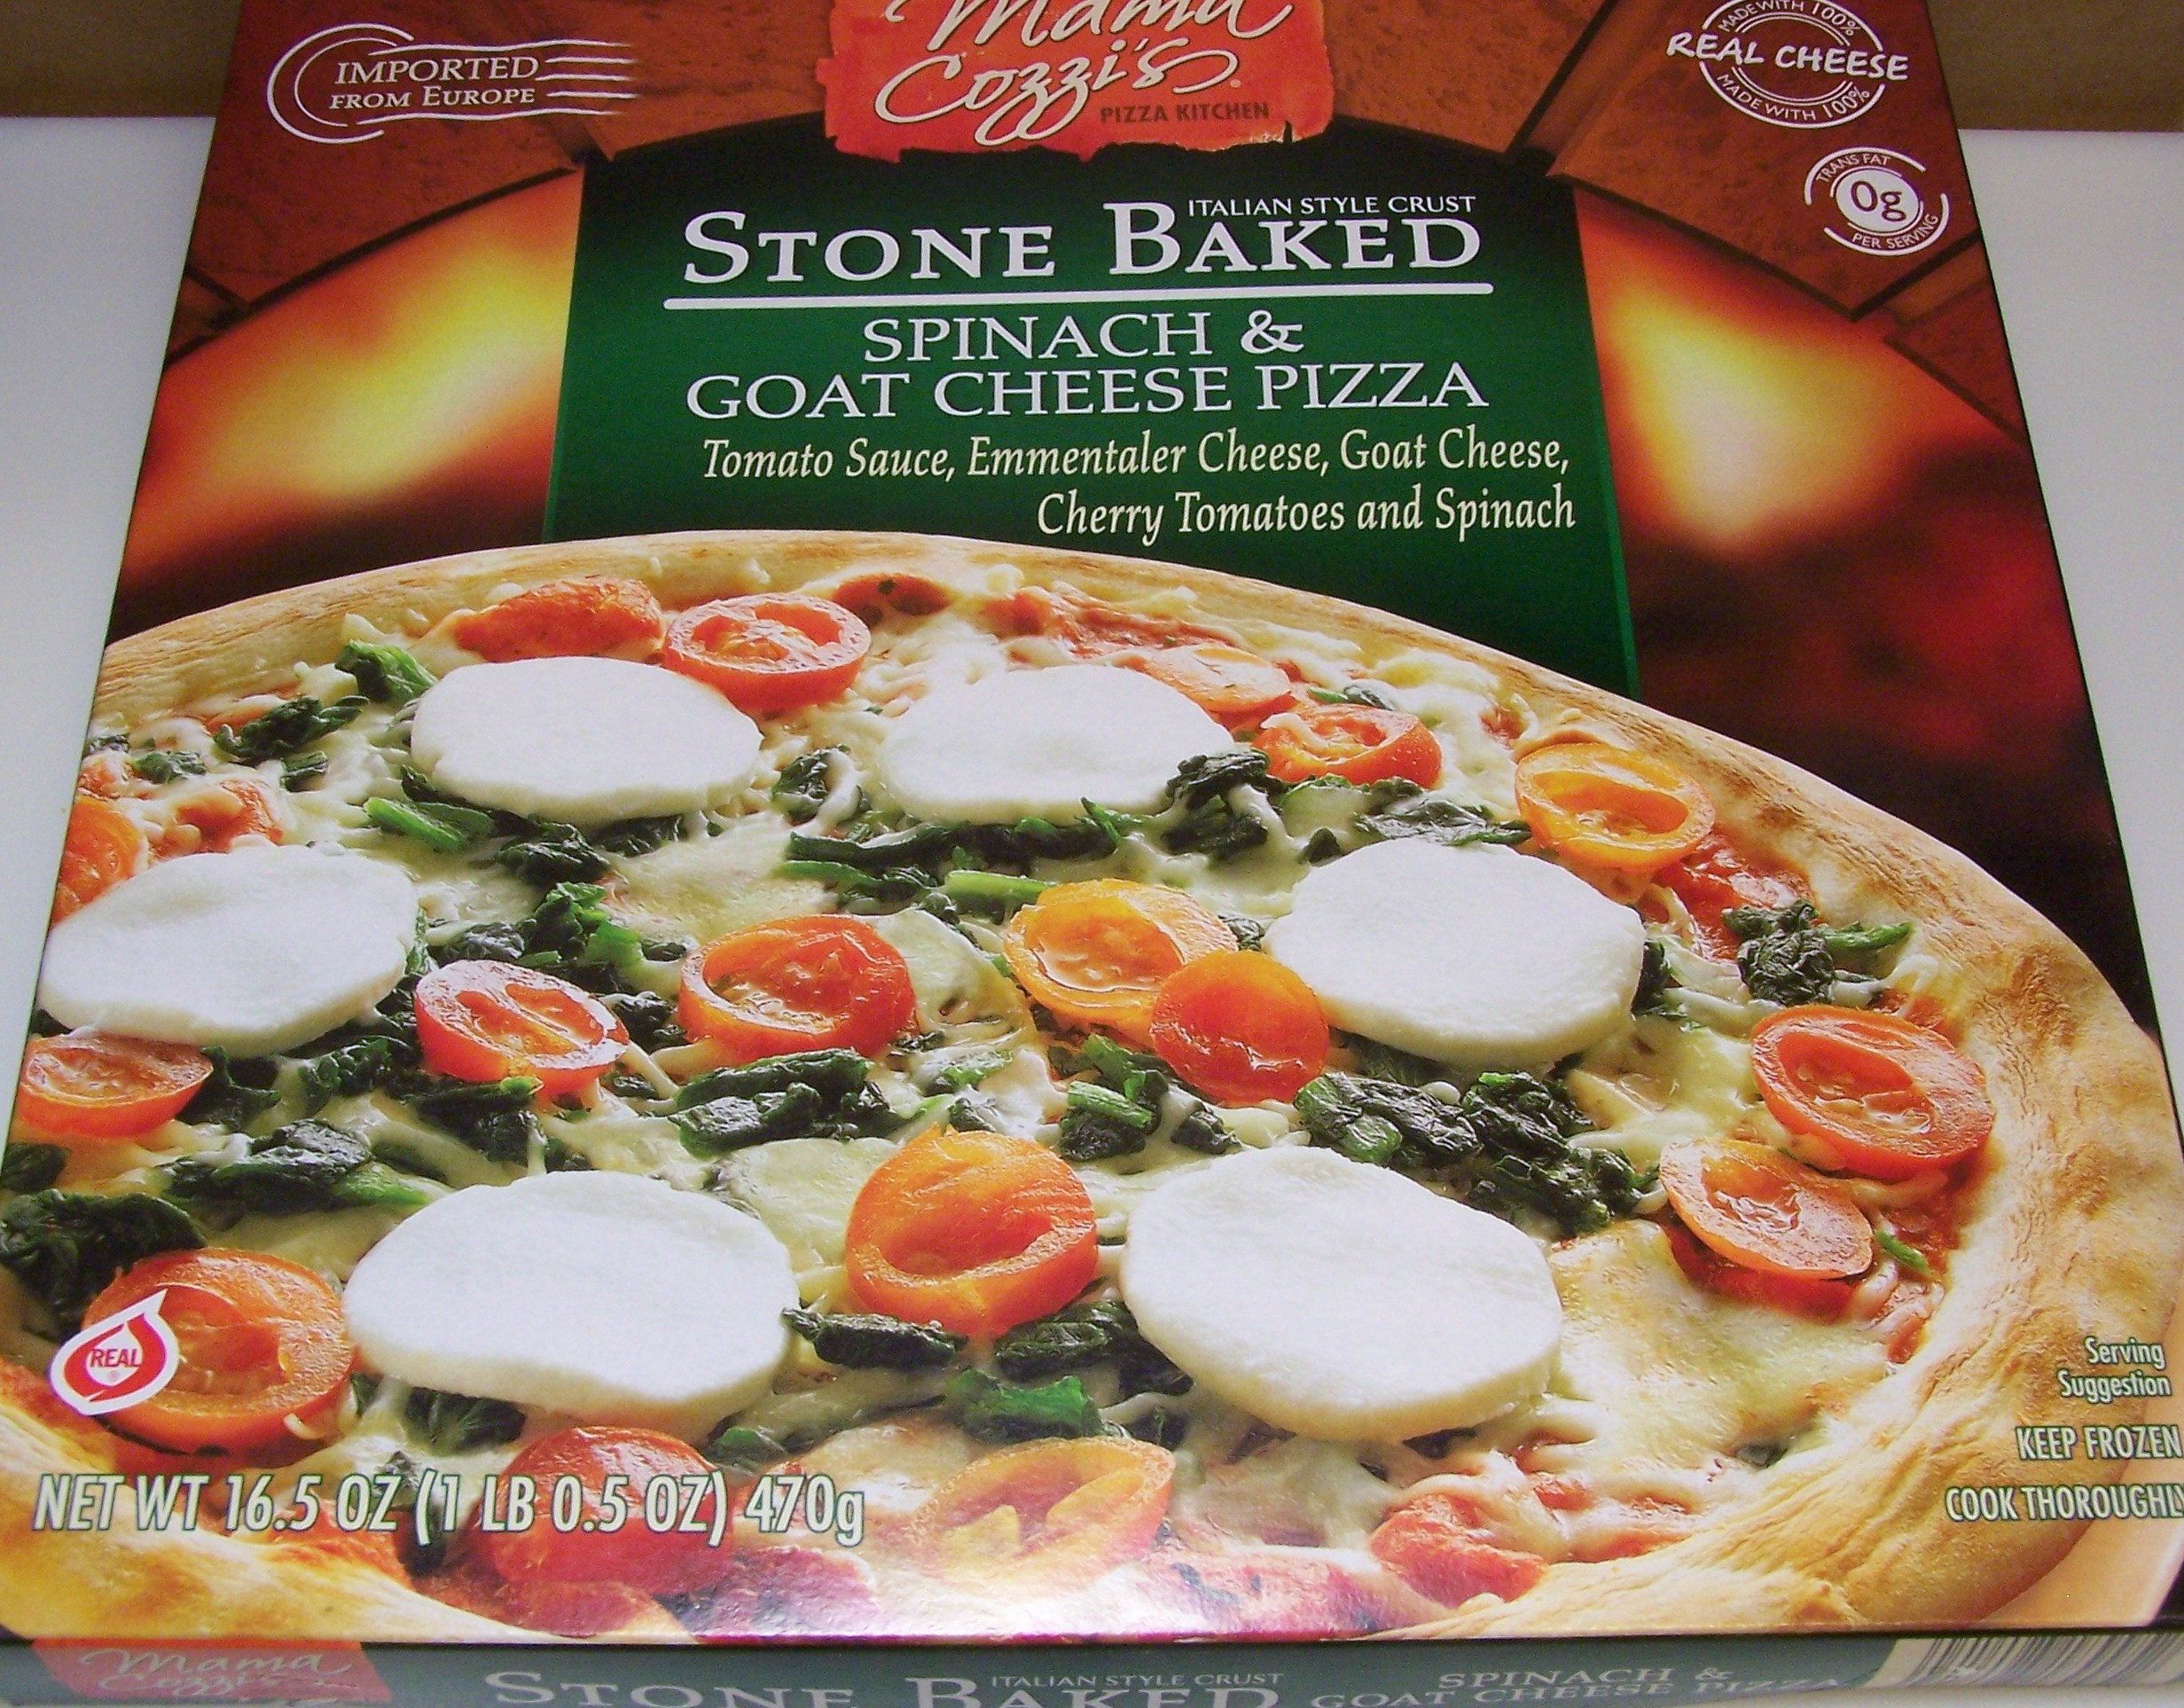 Aldi Mama Cozzis Stone Baked Spinach Goat Cheese Pizza